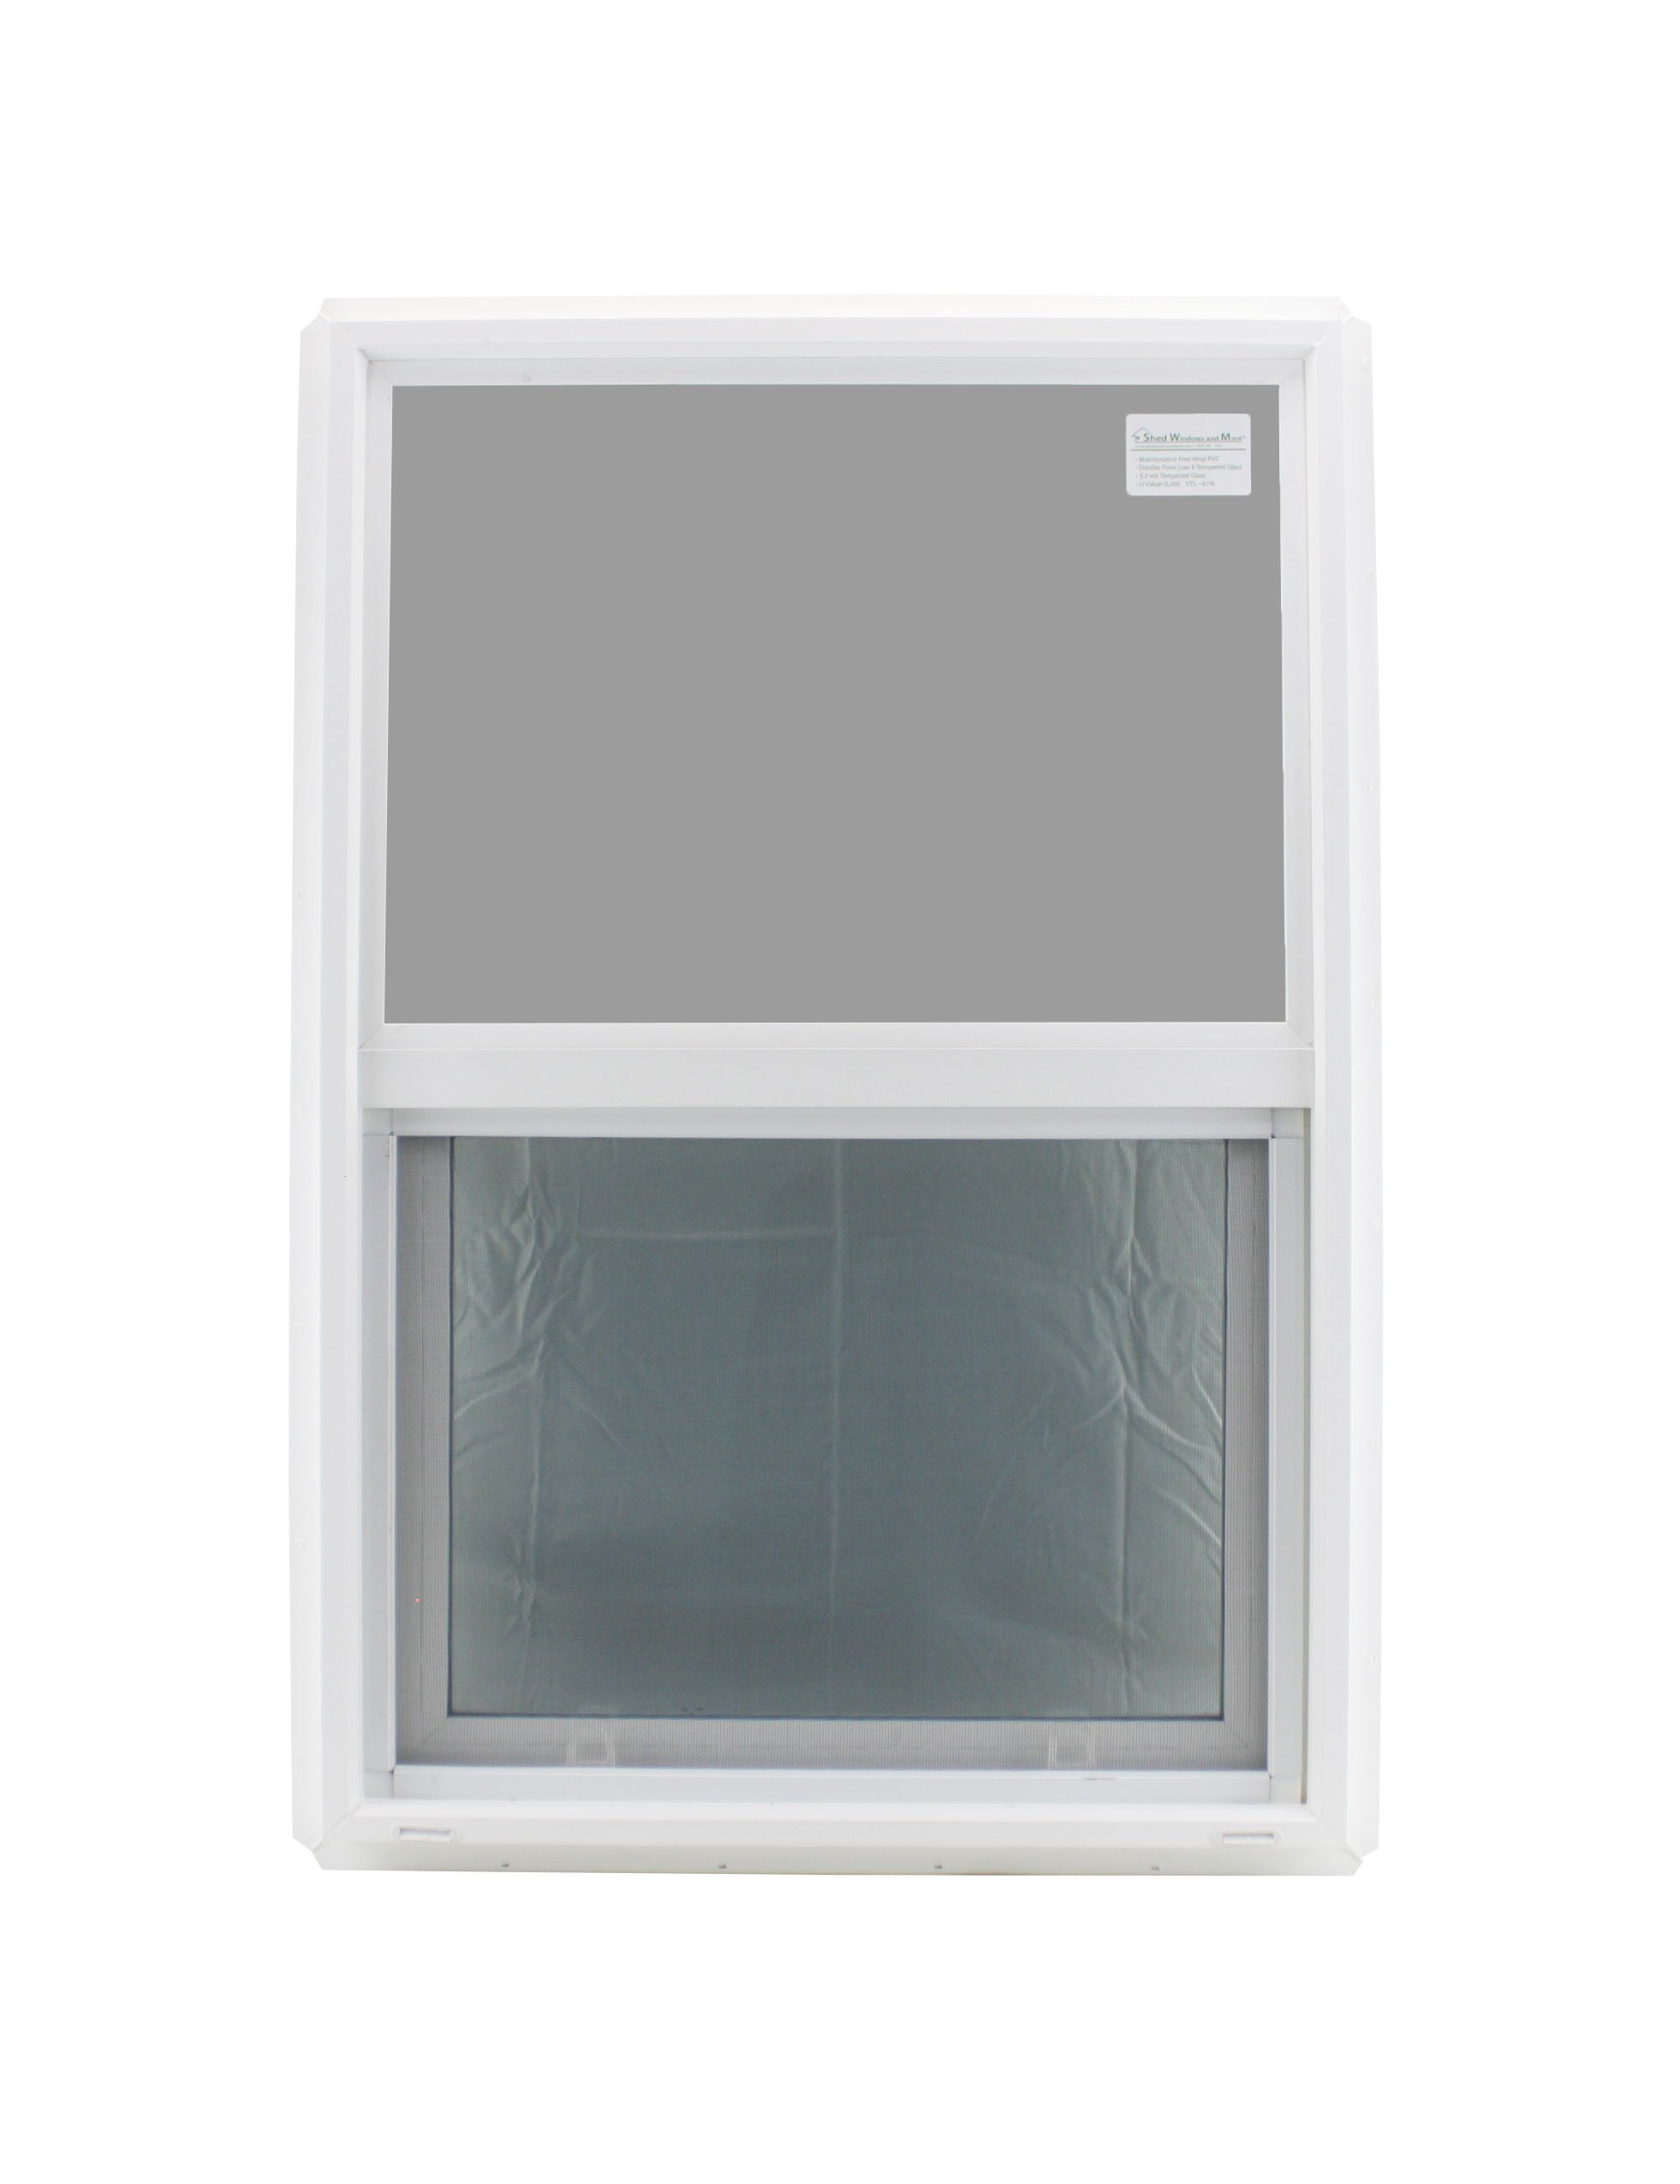 Window 24'' x 36'' Double Pane Tempered Glass Low-E PVC Frame Vertical Slider by Shed Windows and More Inc